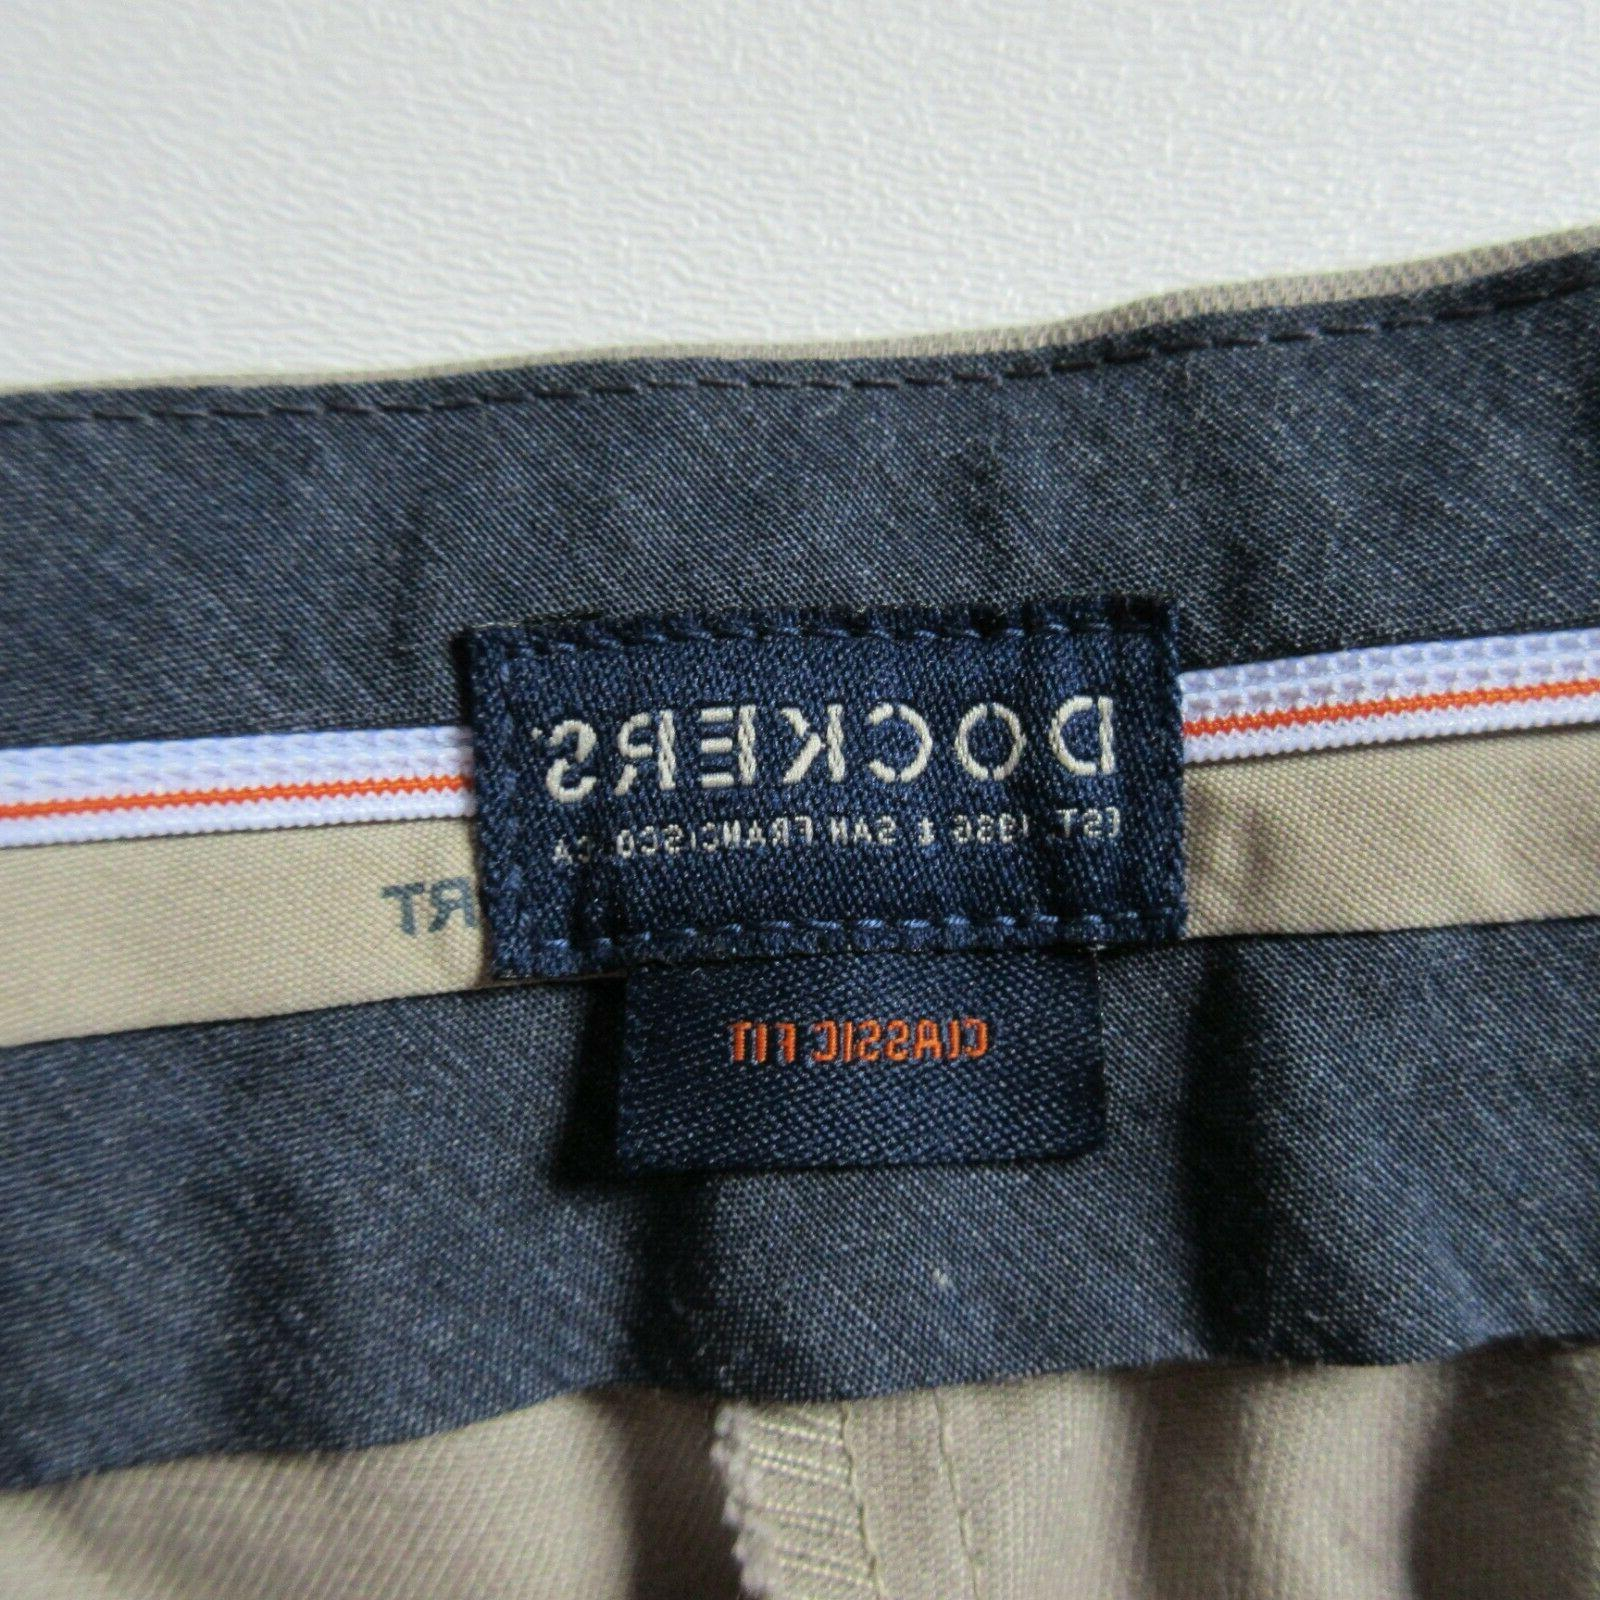 NWT Signature in Classic Pants 34 x 36